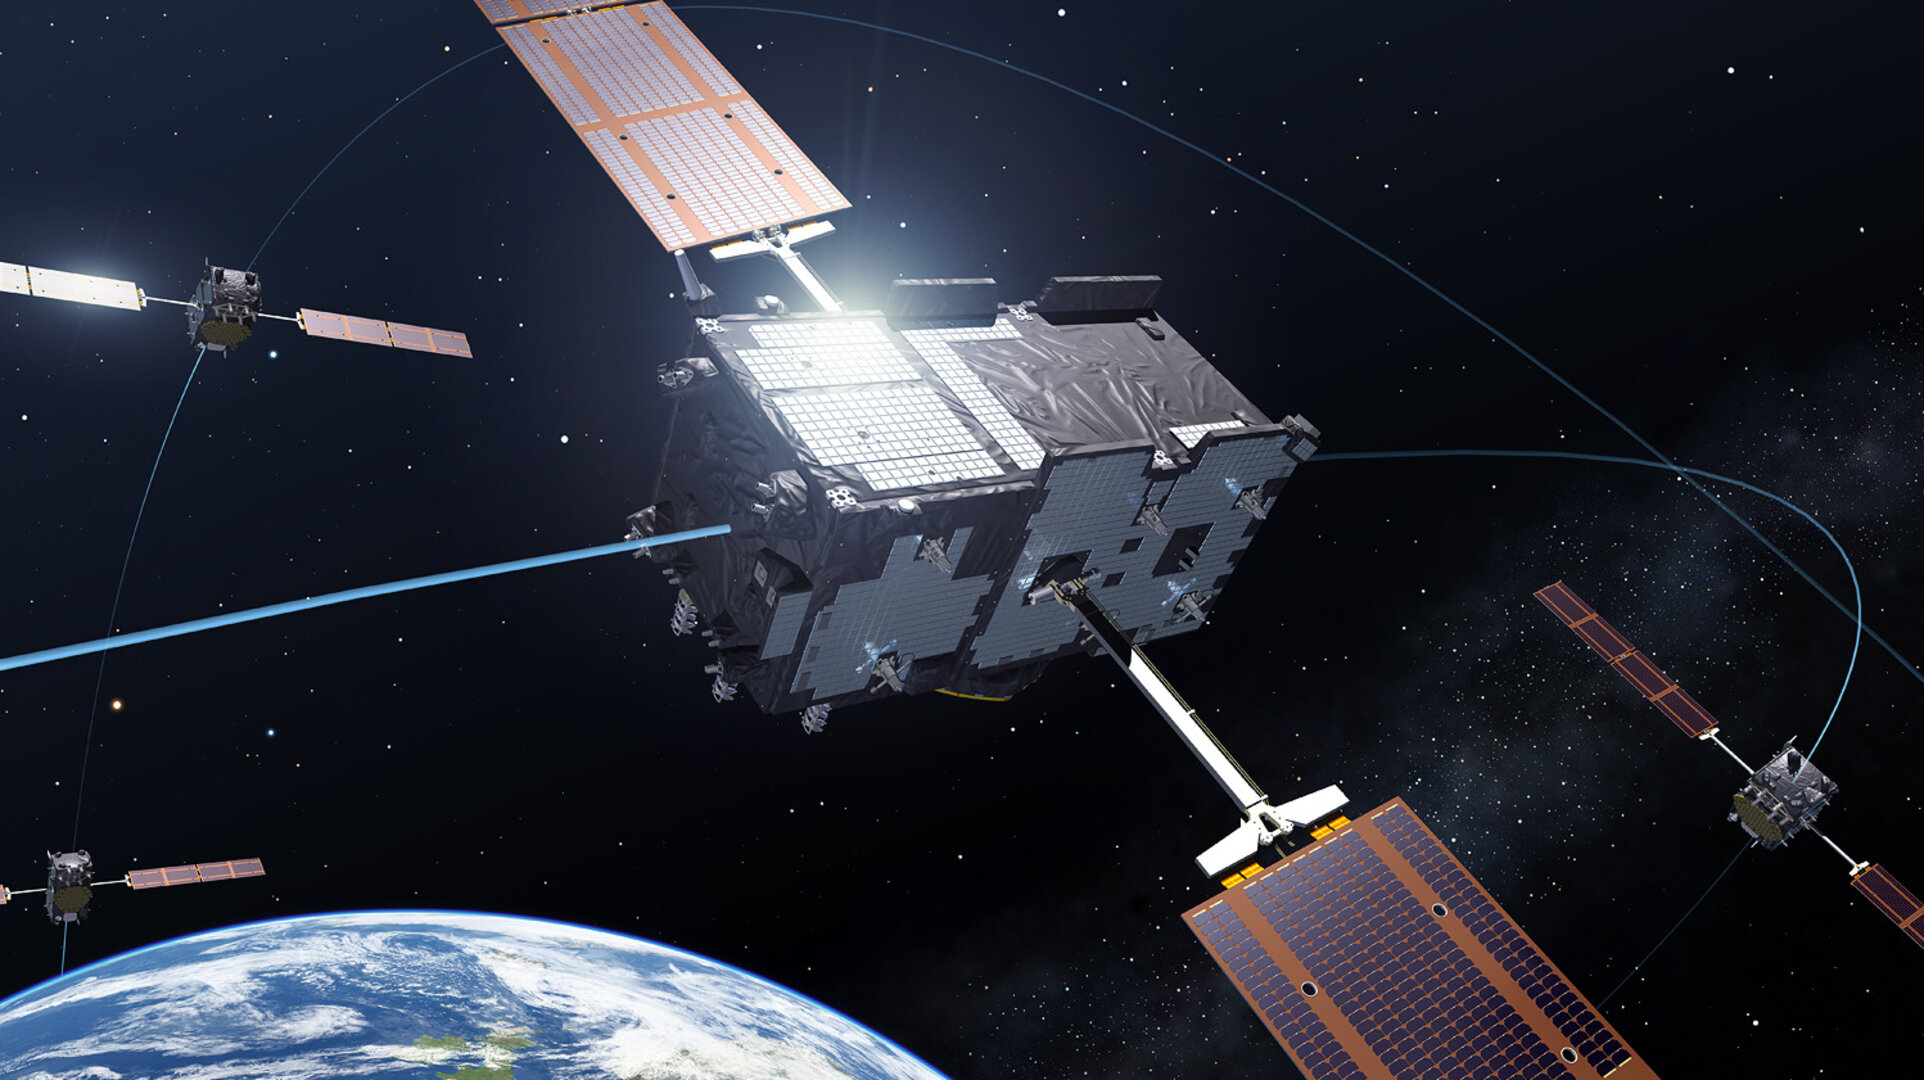 Europe's Galileo satnav system